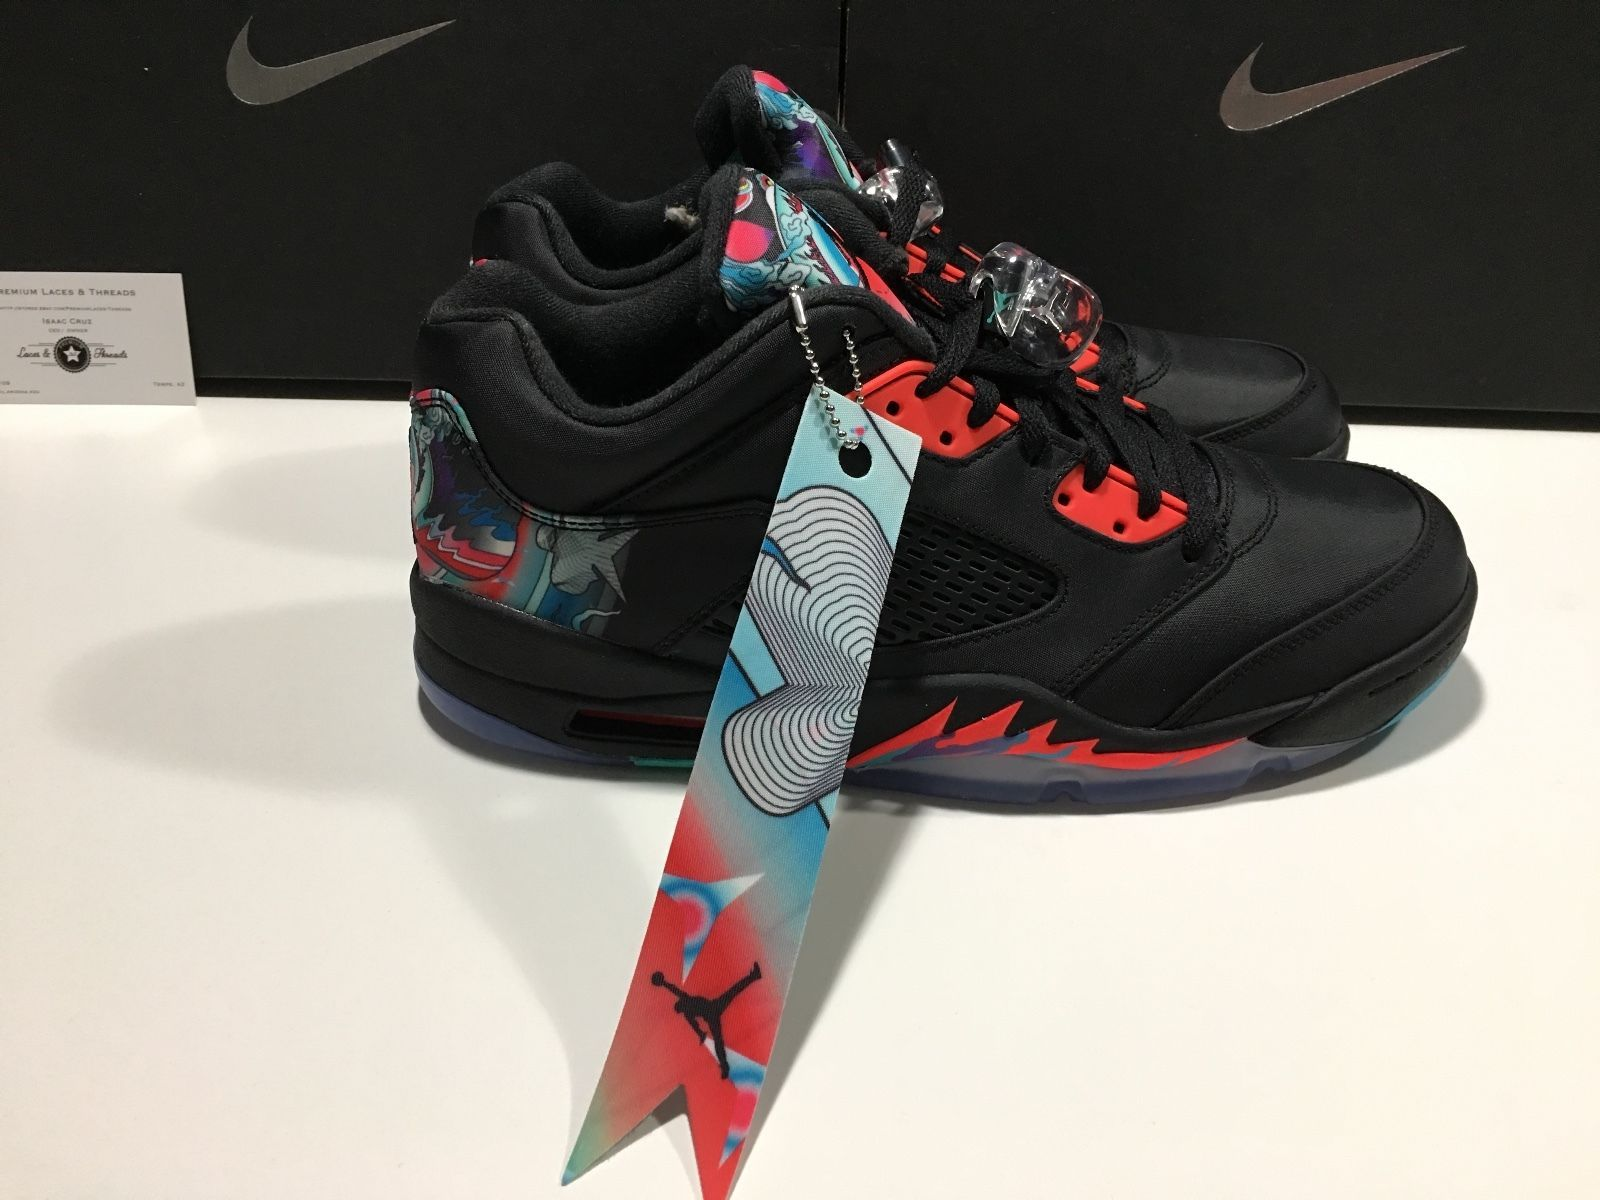 Nike Air Jordan 5 Retro Low CNY 'Chinese New Year' 840475-060 Size